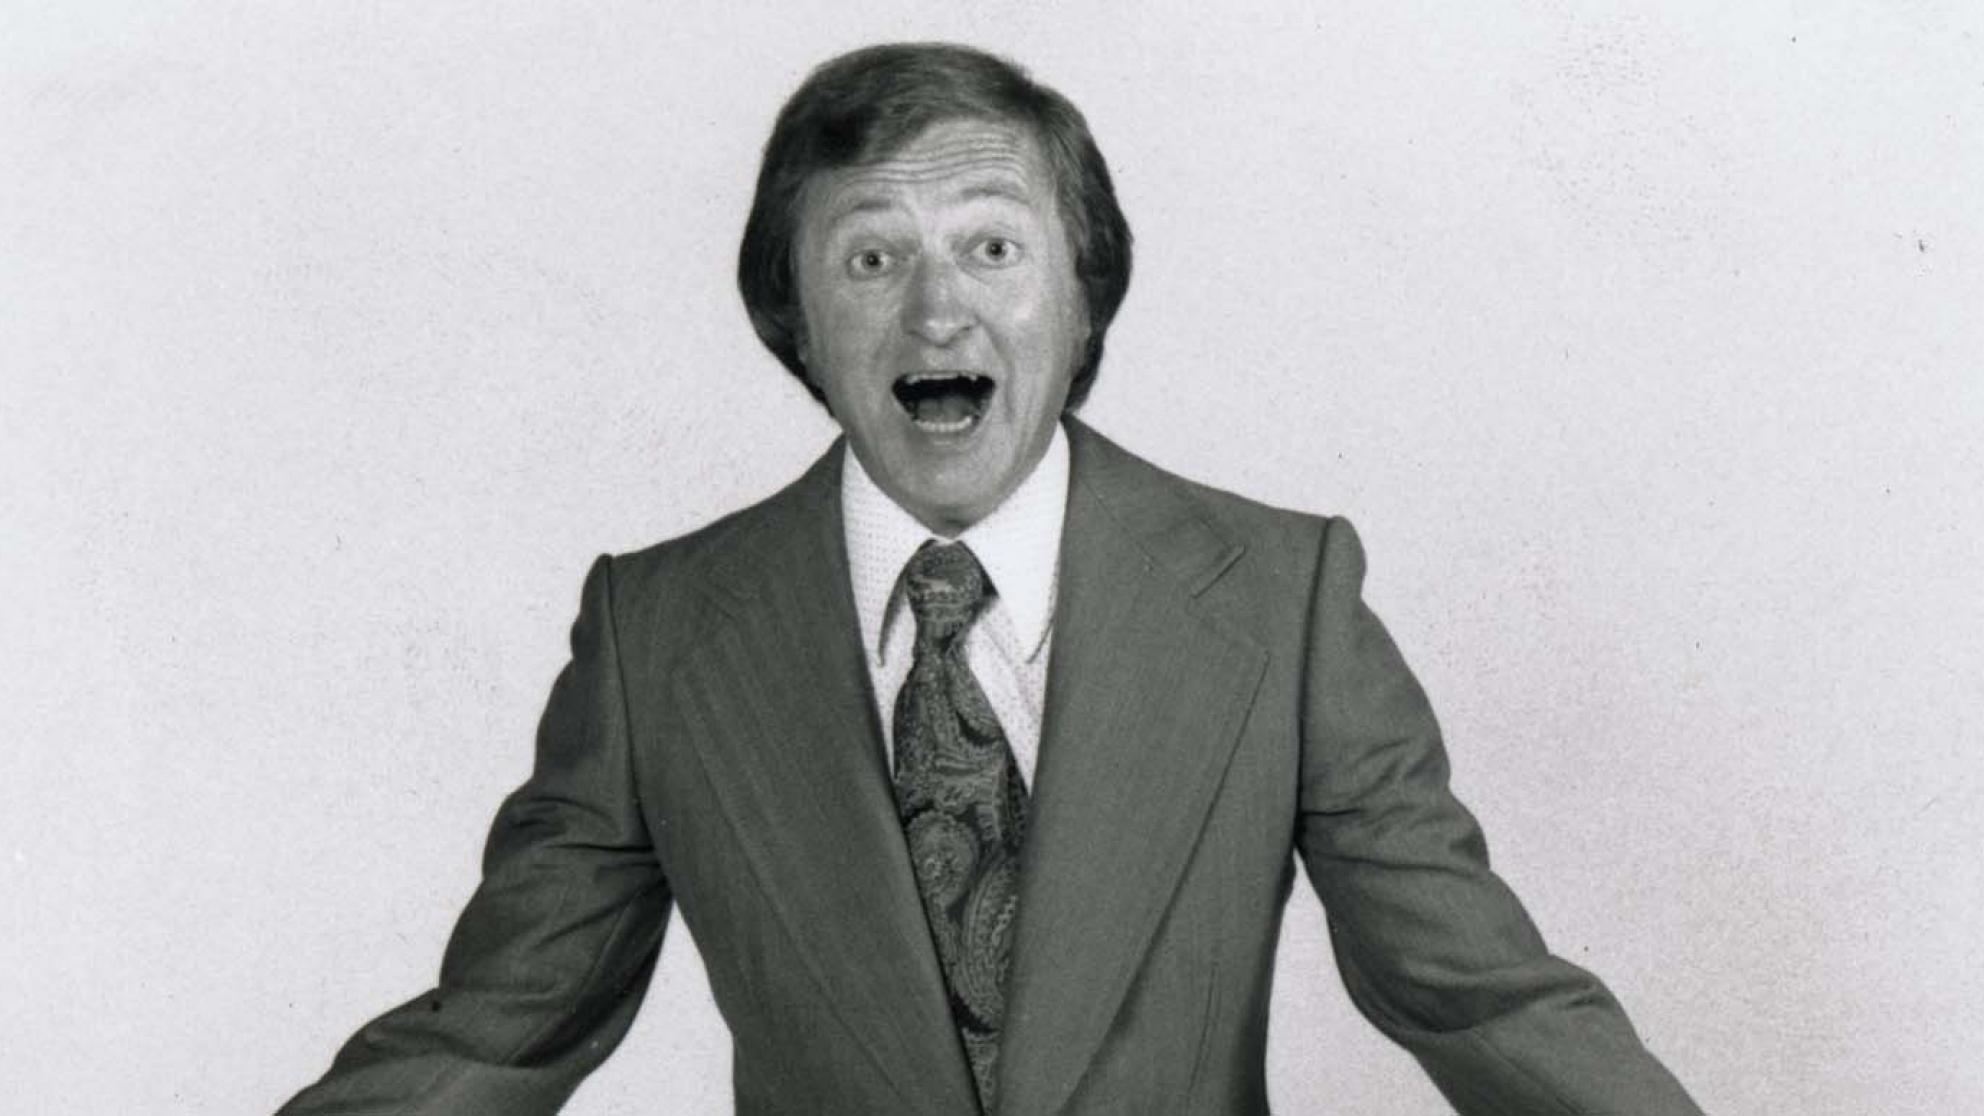 A 1970s publicity shot of Graham Kennedy wearing a suit and exclaiming at the camera.